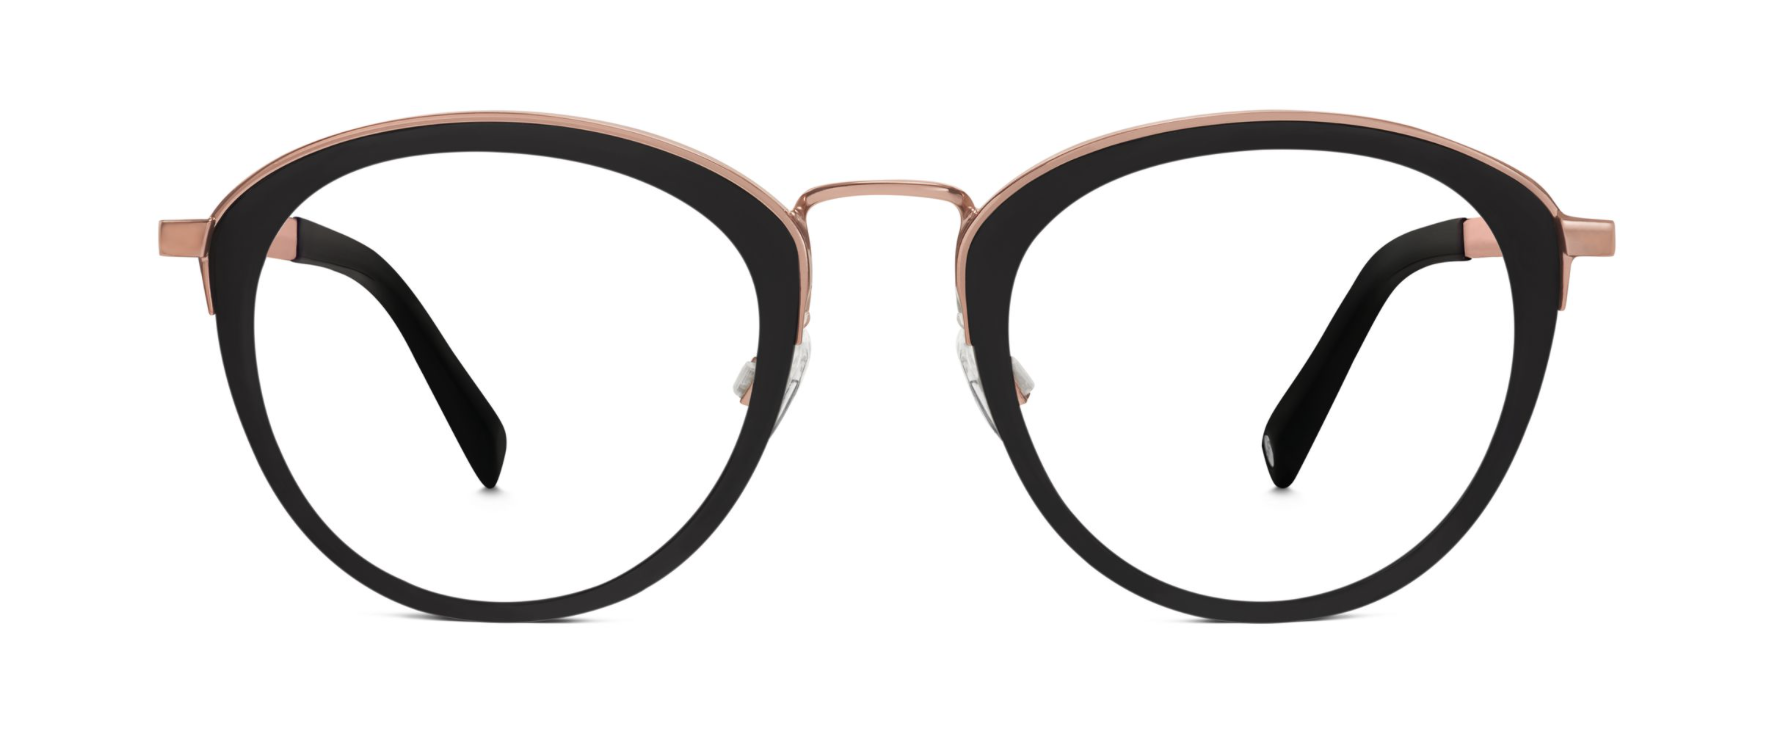 Warby-Parker-Three.png